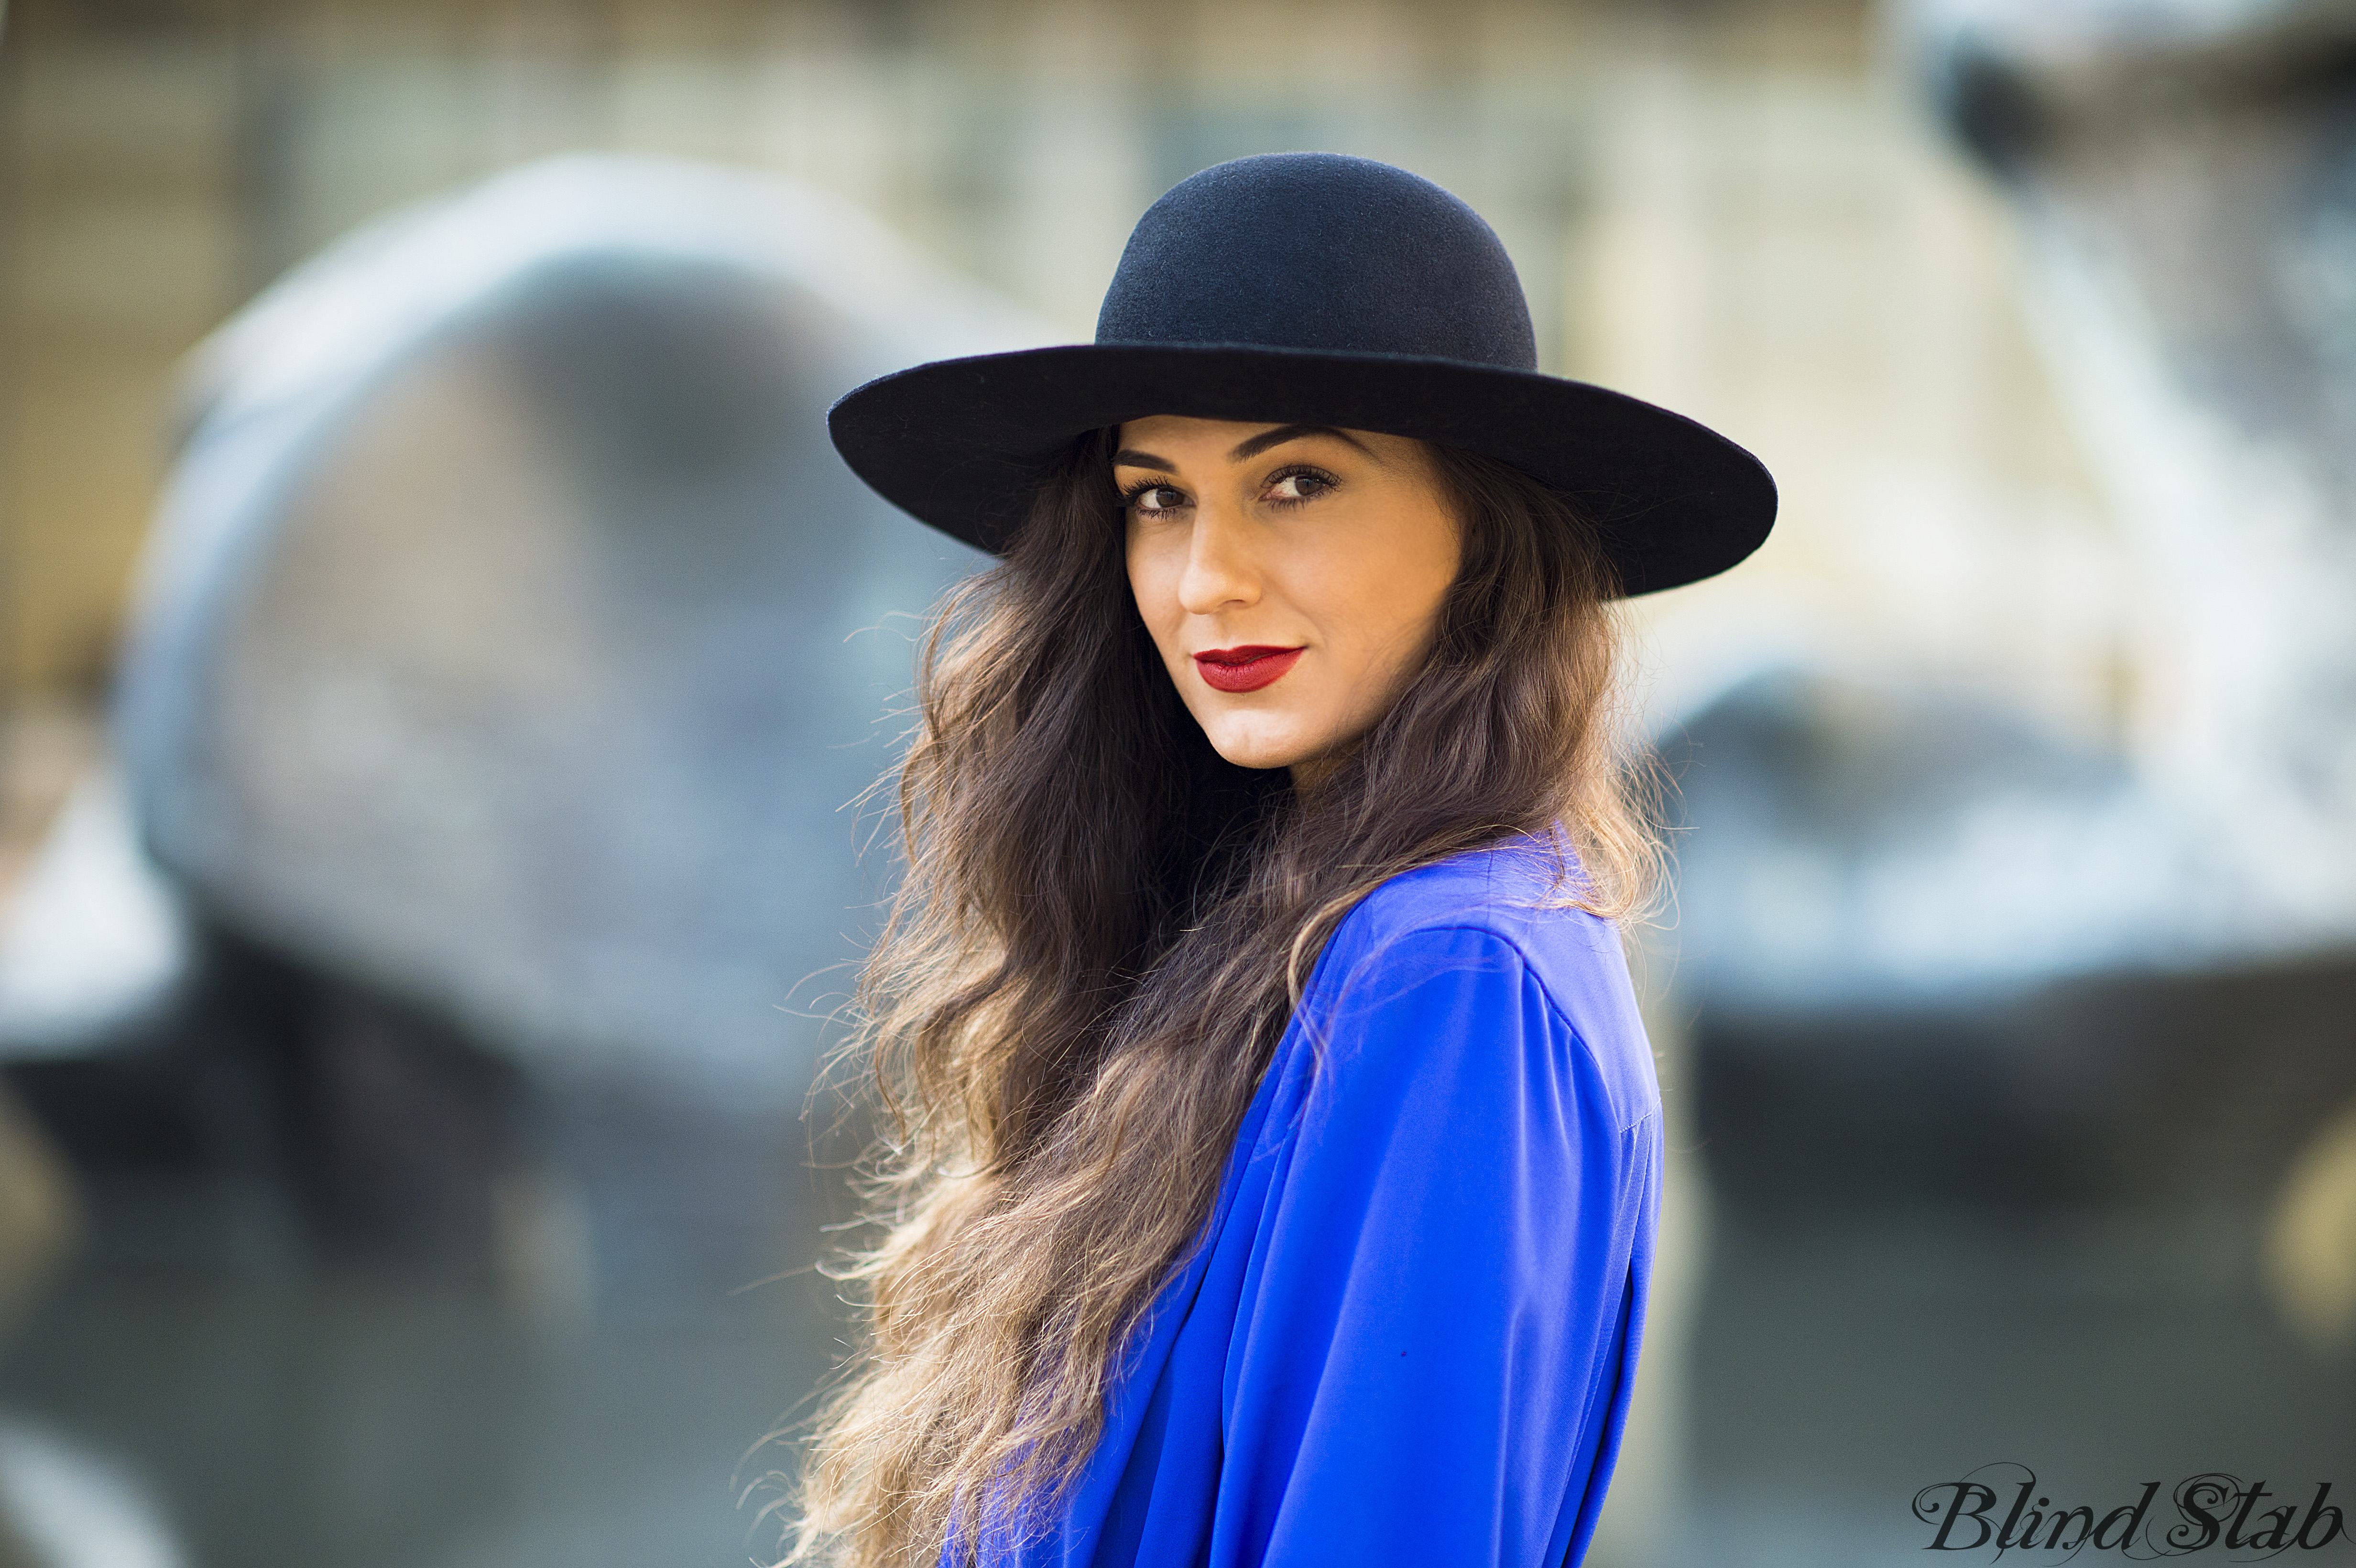 Blue-Jumpsuit-Wide-Brim-Hat-LLMAC-Chili-Lipstick